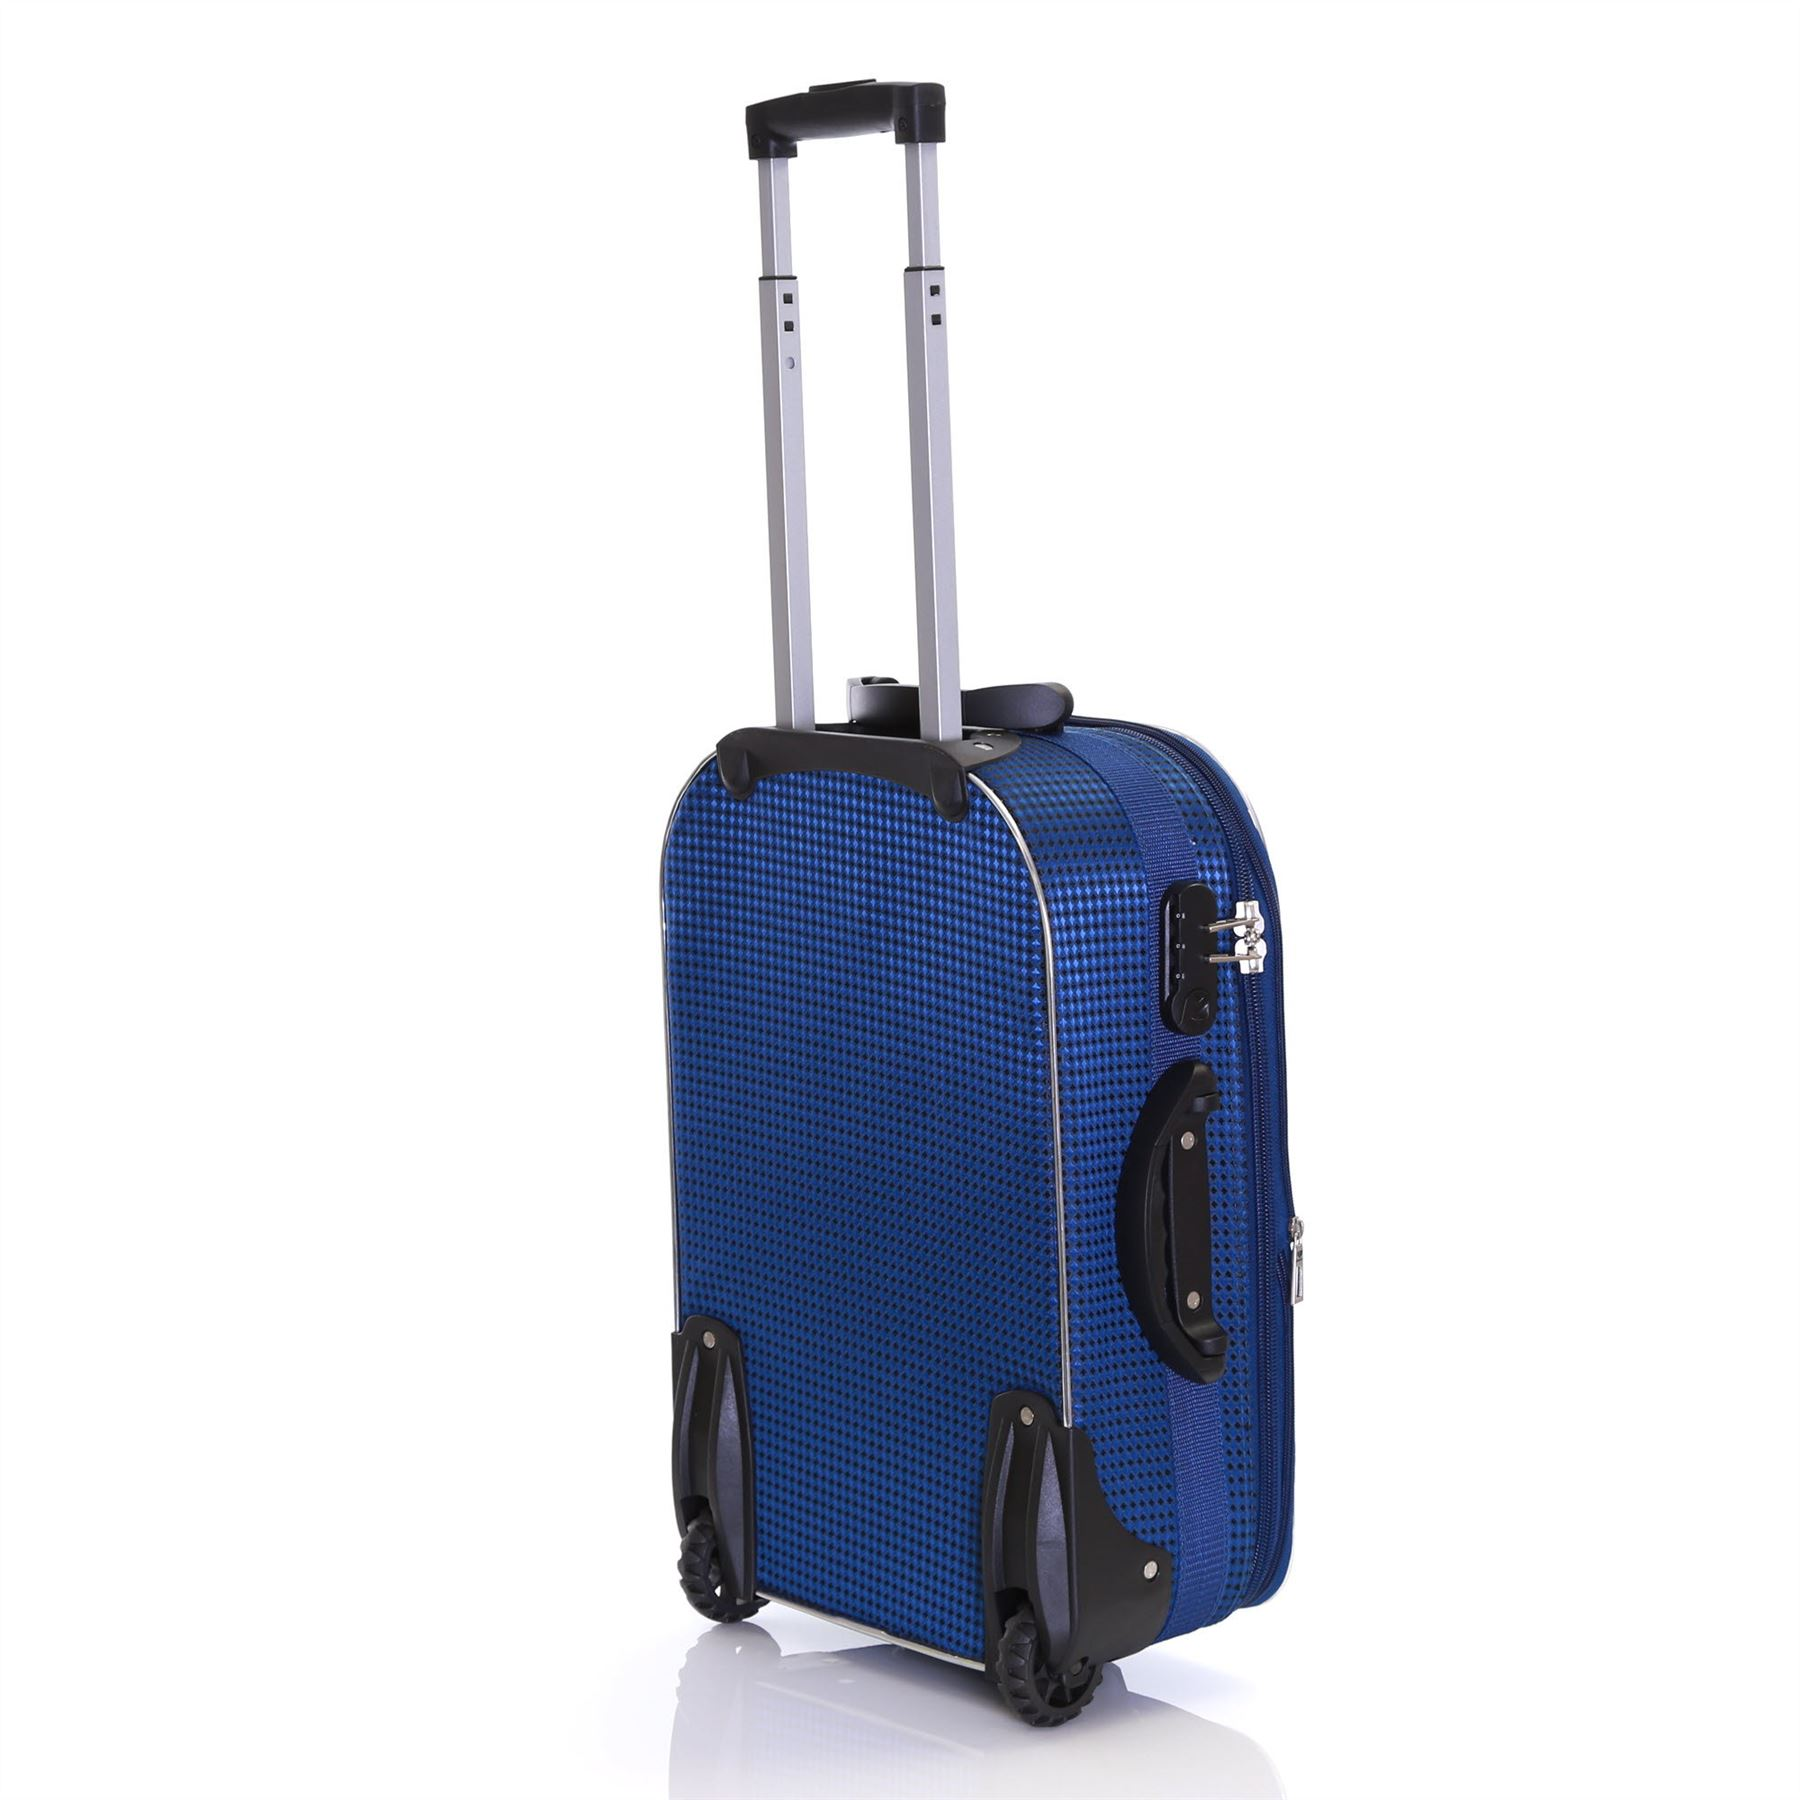 Set-of-2-Lightweight-Expandable-Luggage-Trolleys-Suitcases-Cases-Bags-Set thumbnail 12